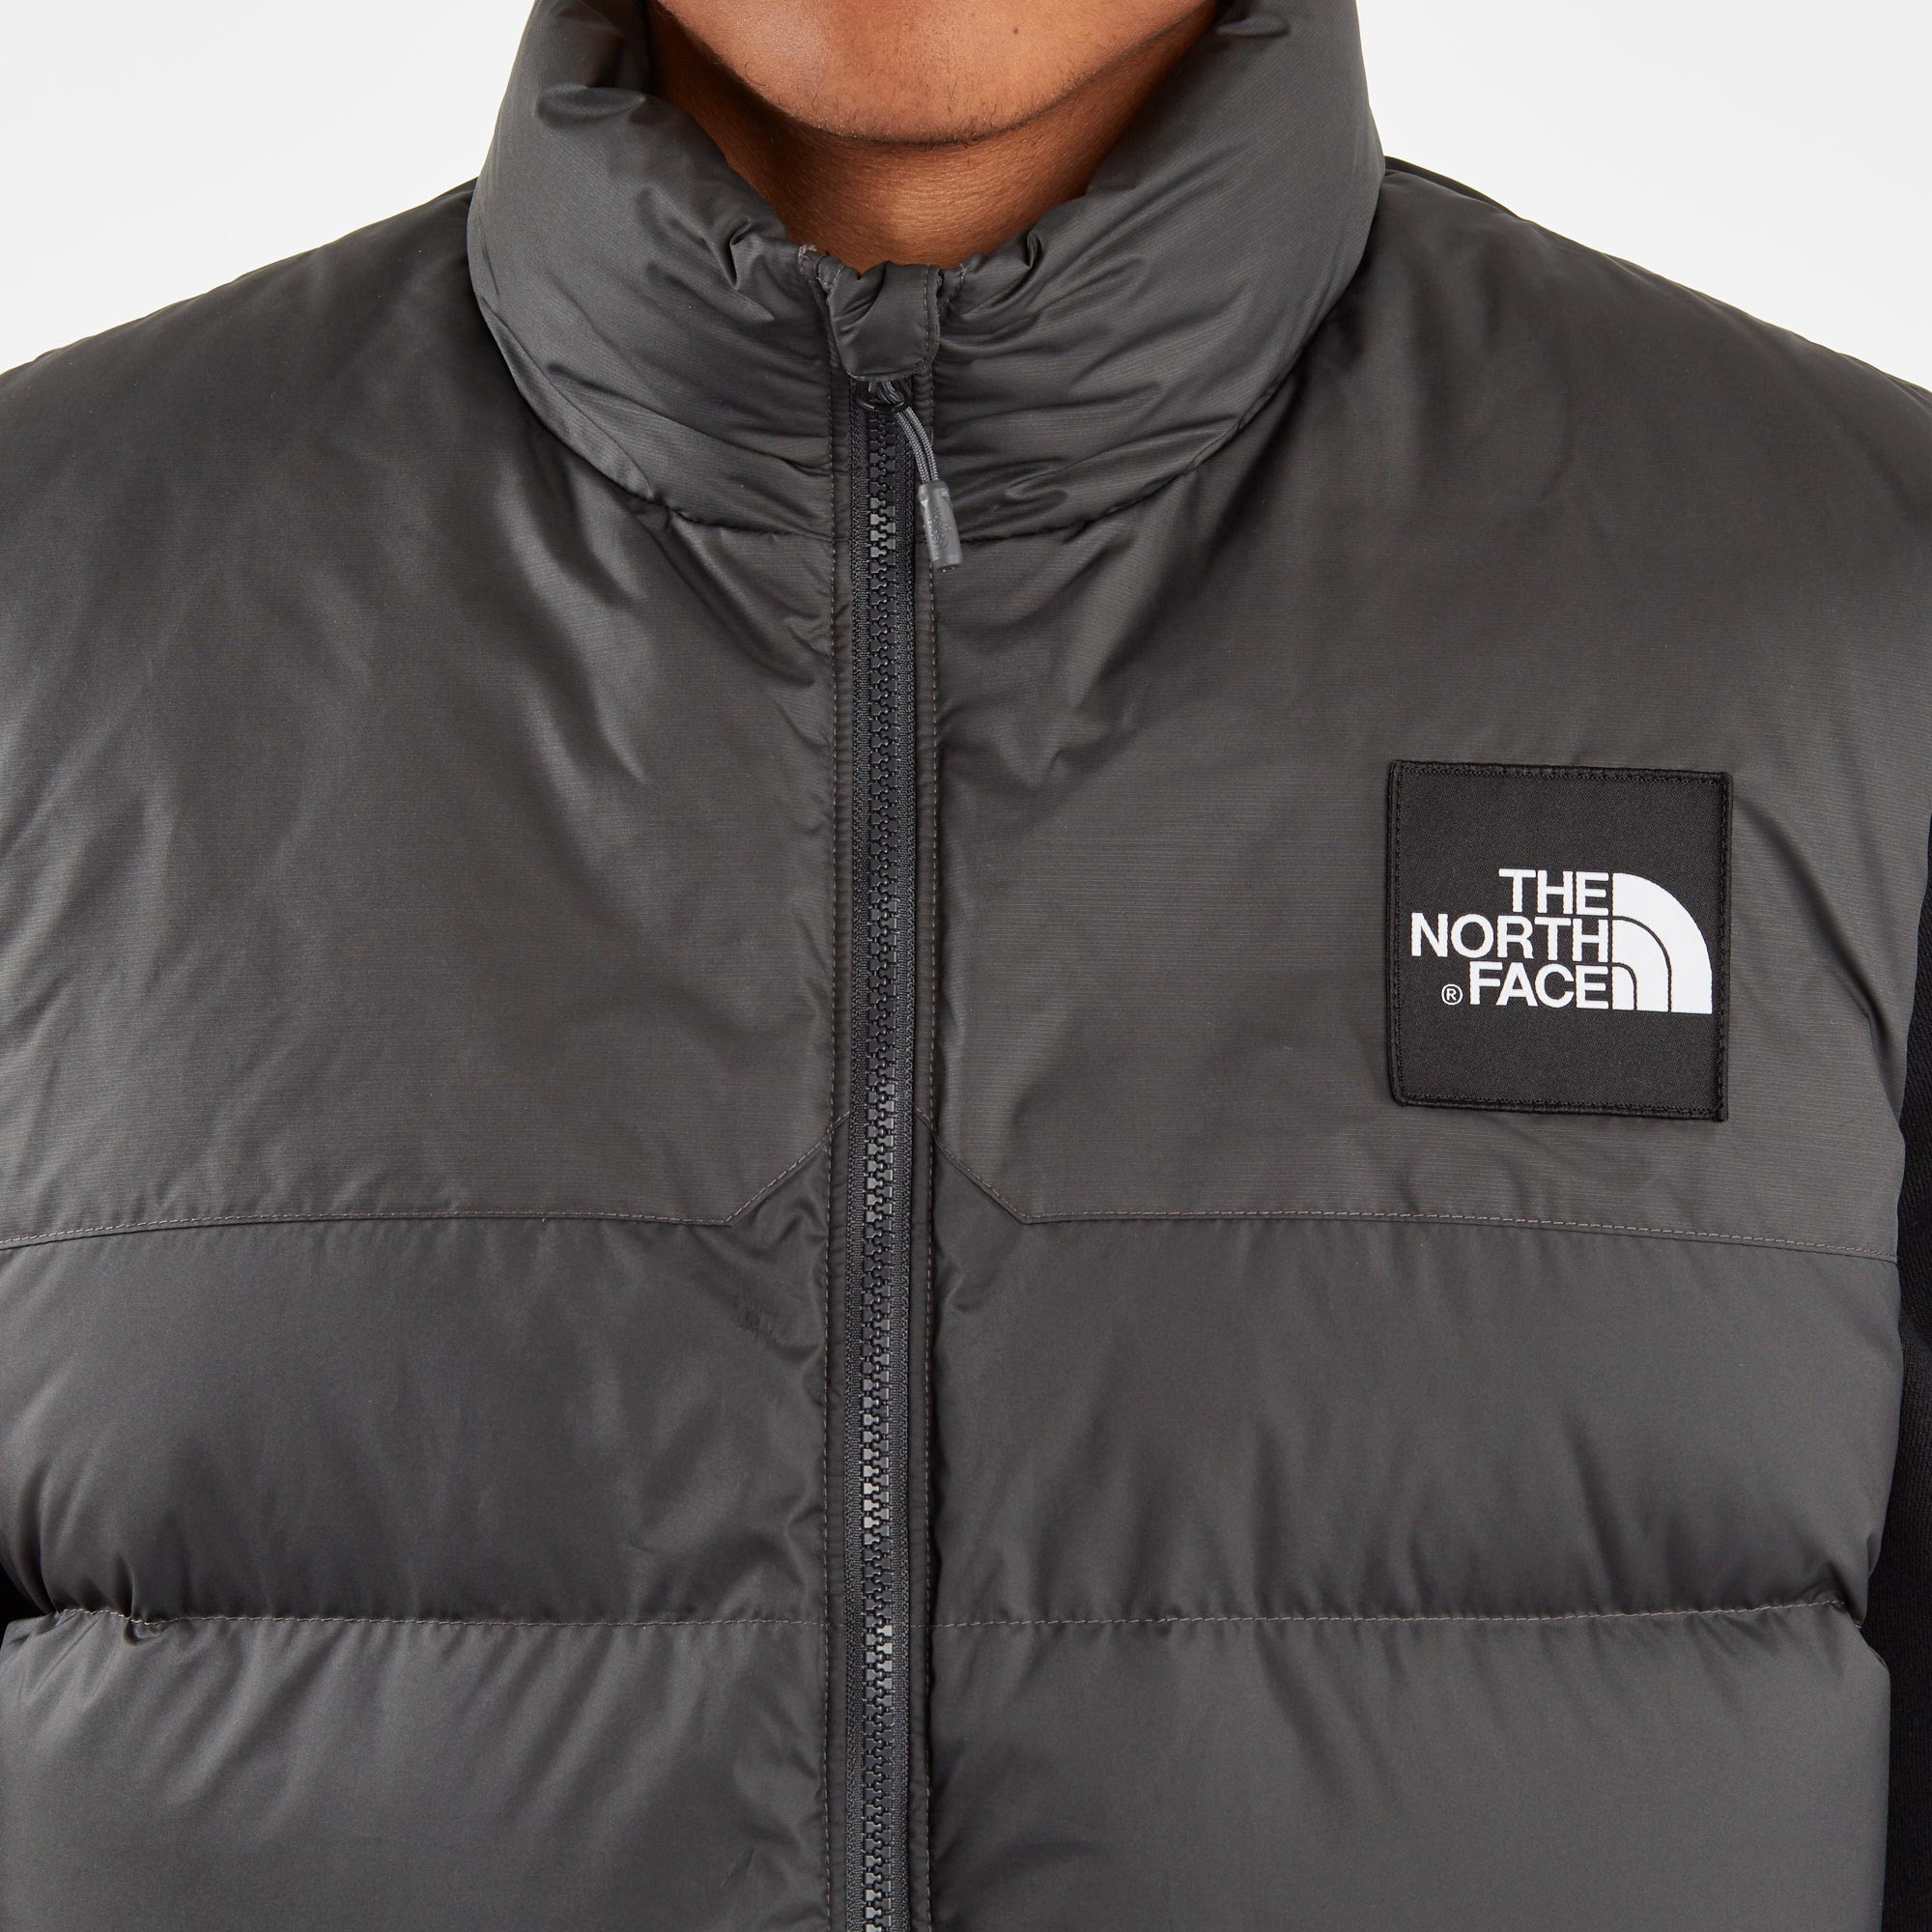 683345110d The North Face M 1992 Nuptse Vest - T92zwn0c5 - Sneakersnstuff ...